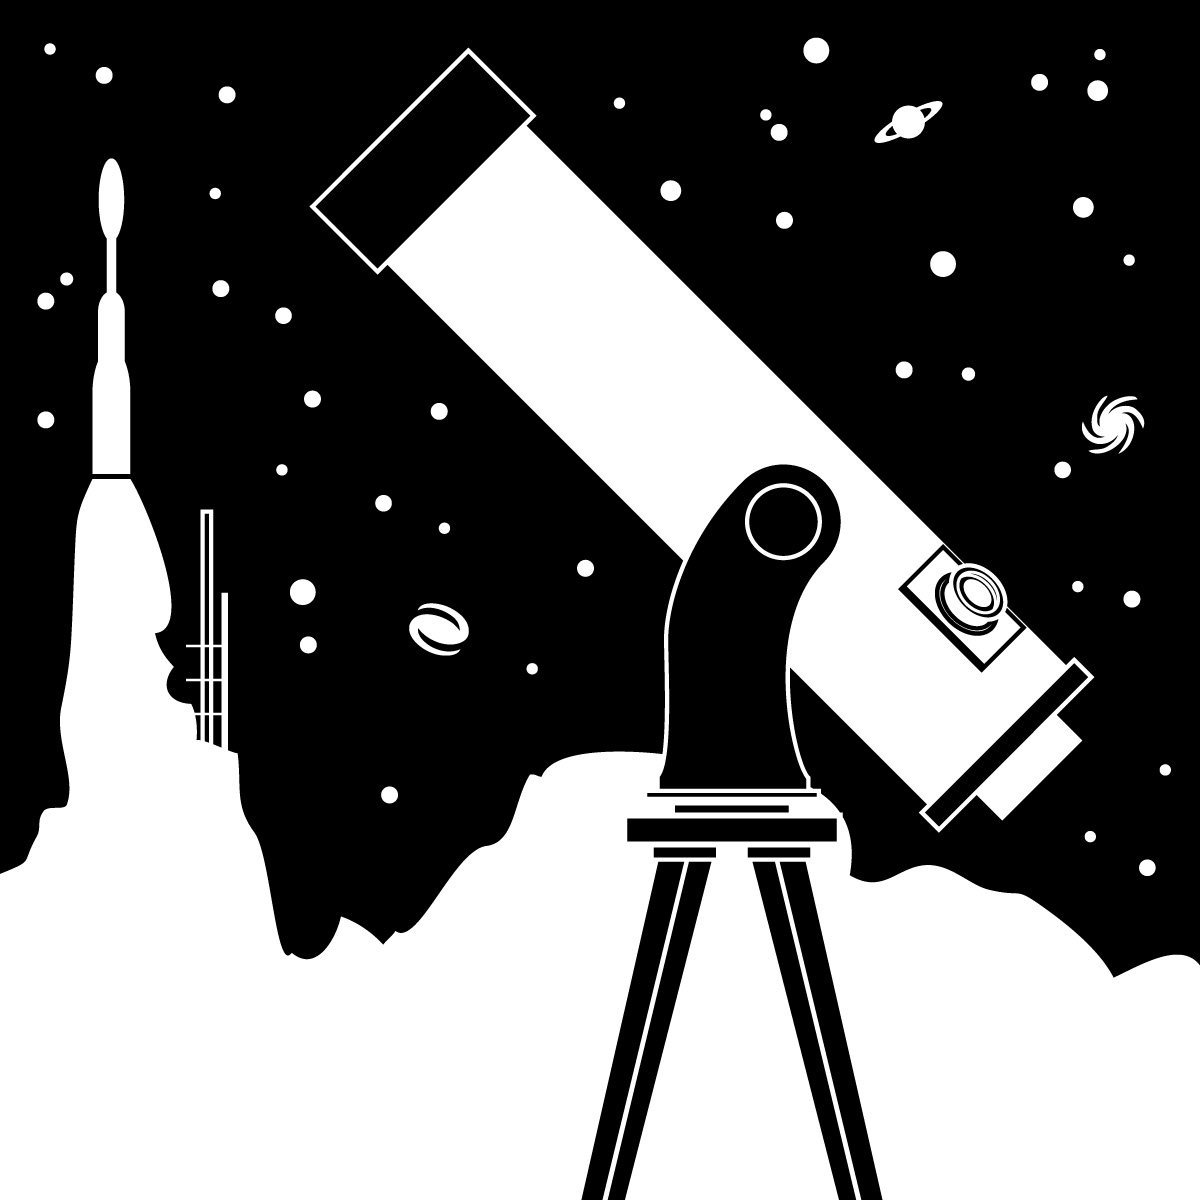 astronomy clipart free clipart panda free clipart images rh clipartpanda com astronomy clipart black and white Space Clip Art